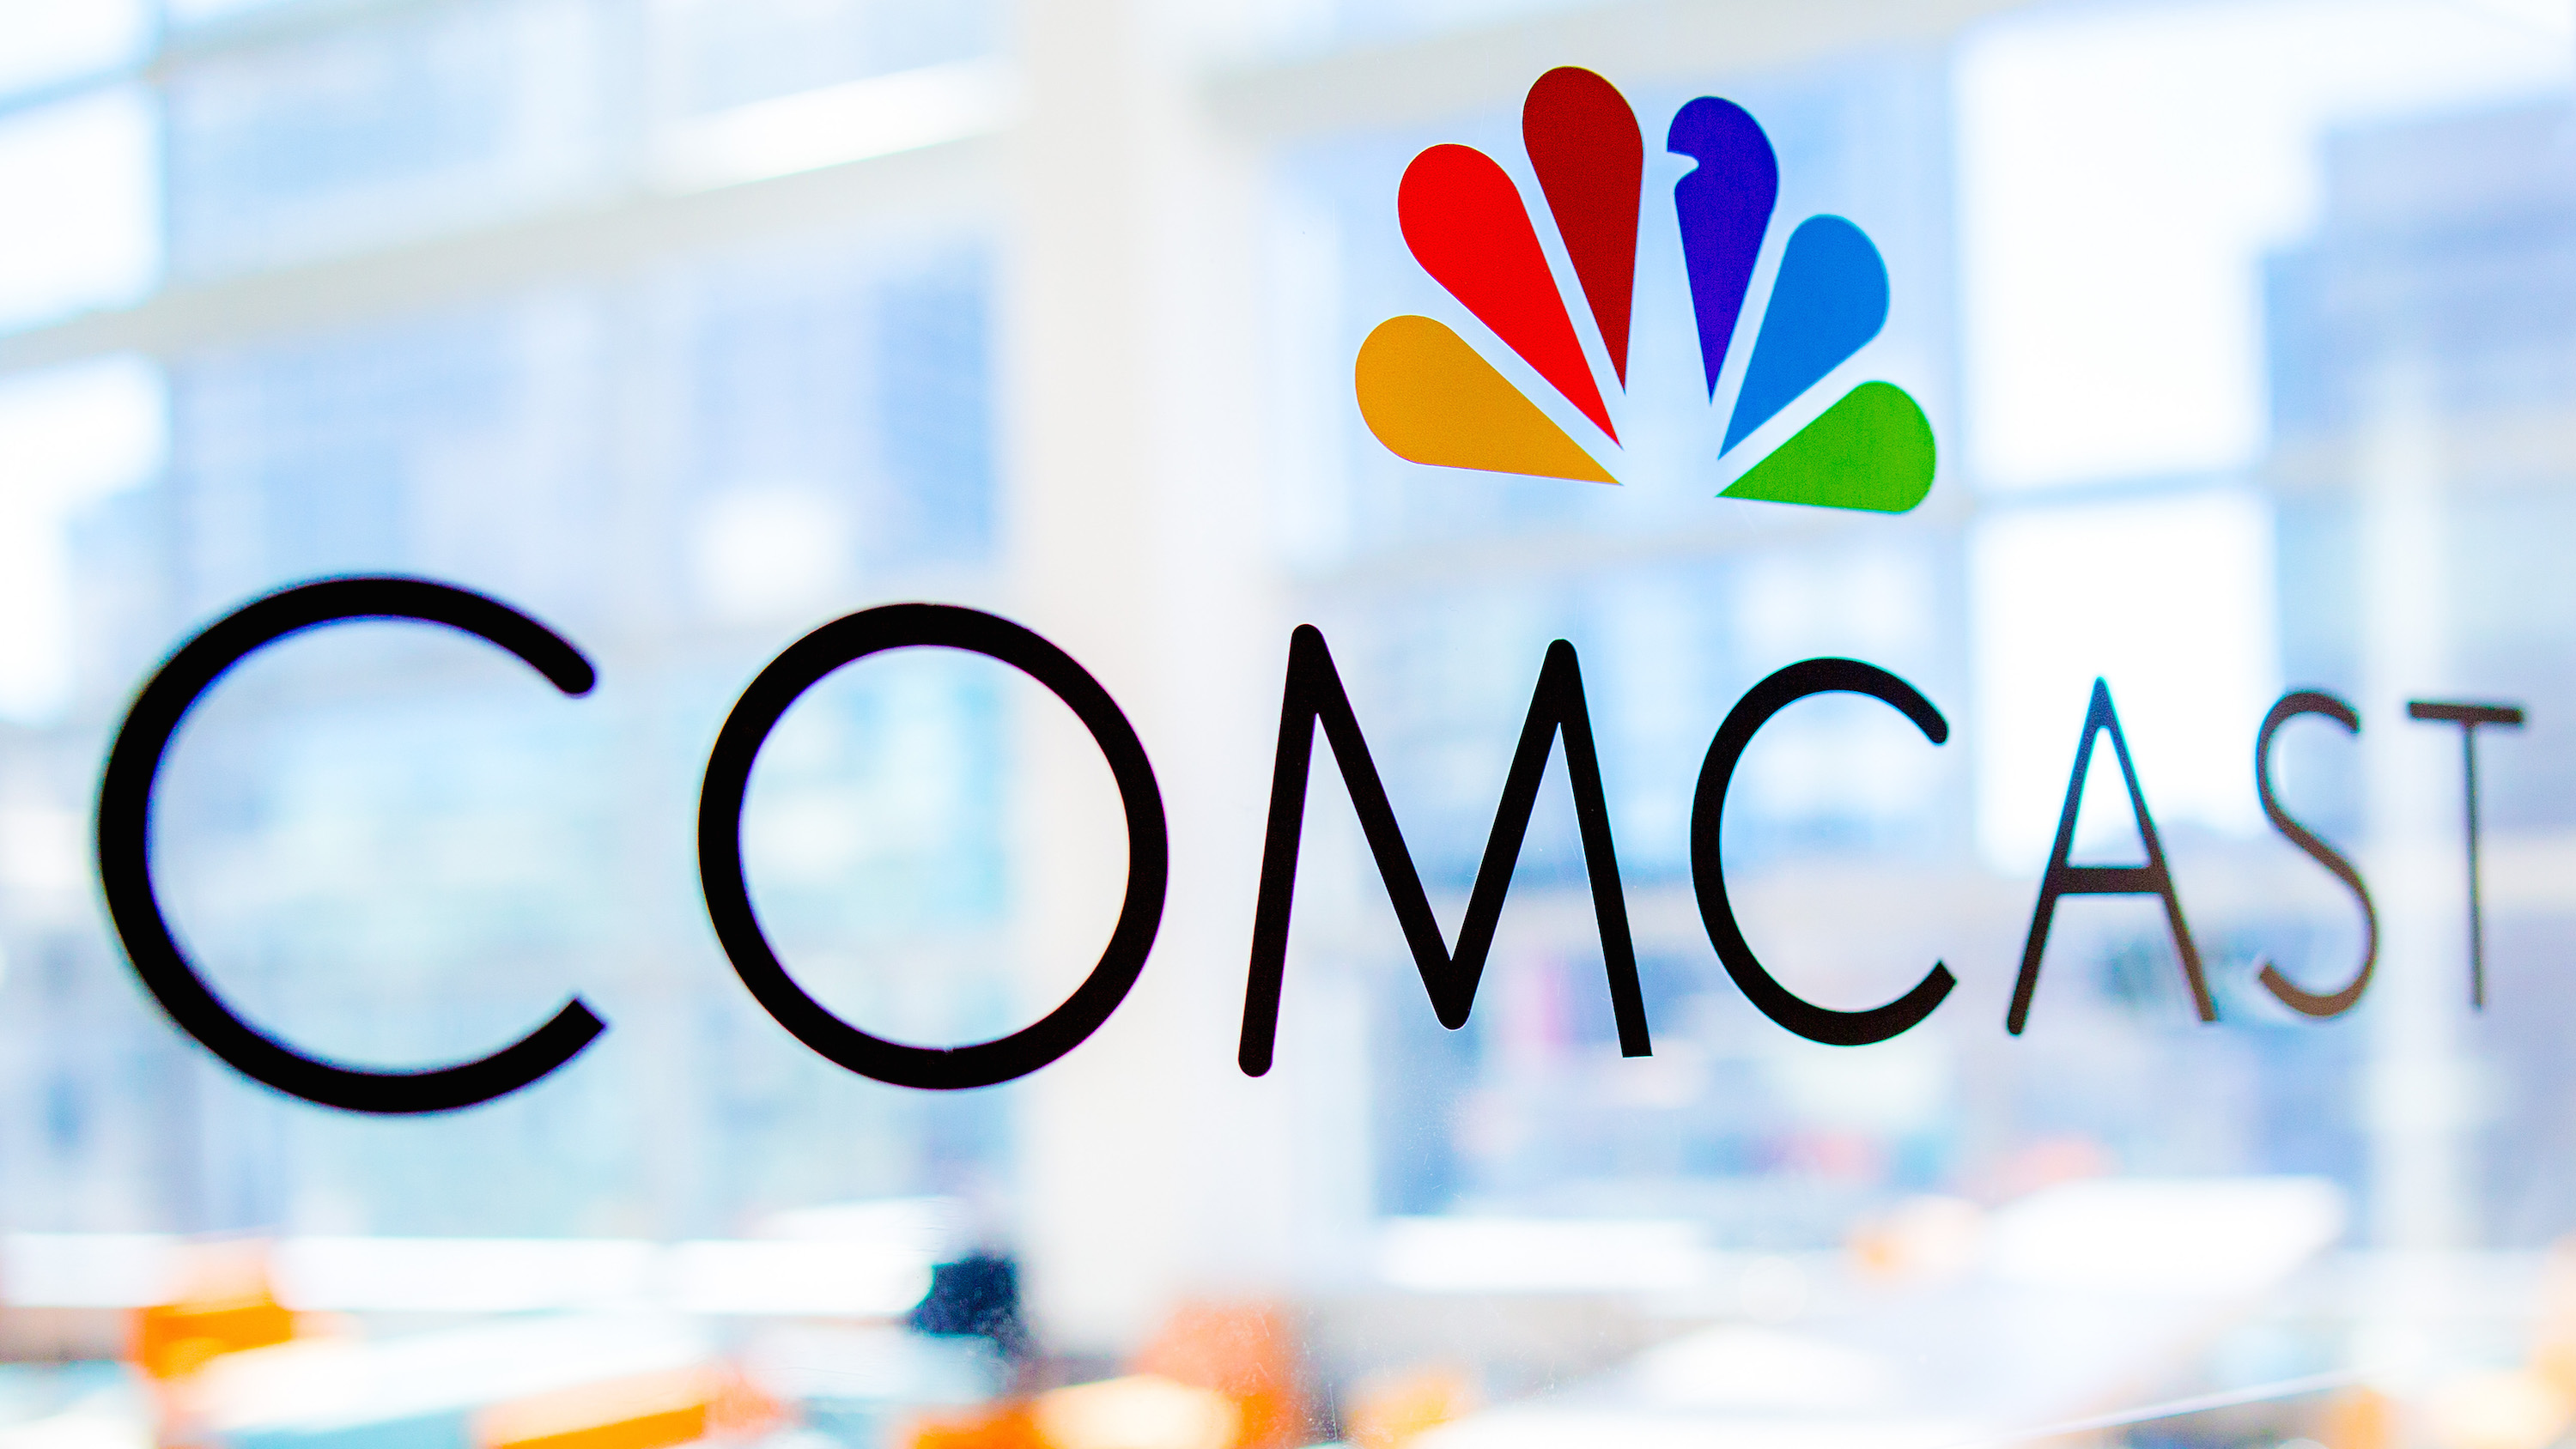 Comcast, Comcast Corporation, Comcast NBCUniversal, Comcast Center, Comcast Labs, Comcast Business, Xfinity, Cable, Internet, Wi-Fi, Broadband